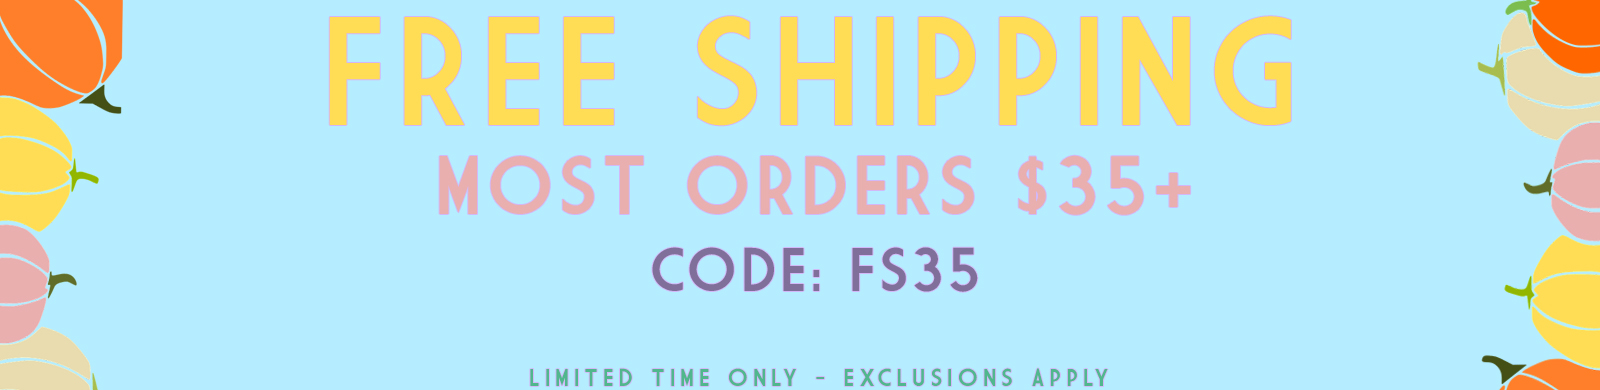 Free Shipping on Most Orders Over $35